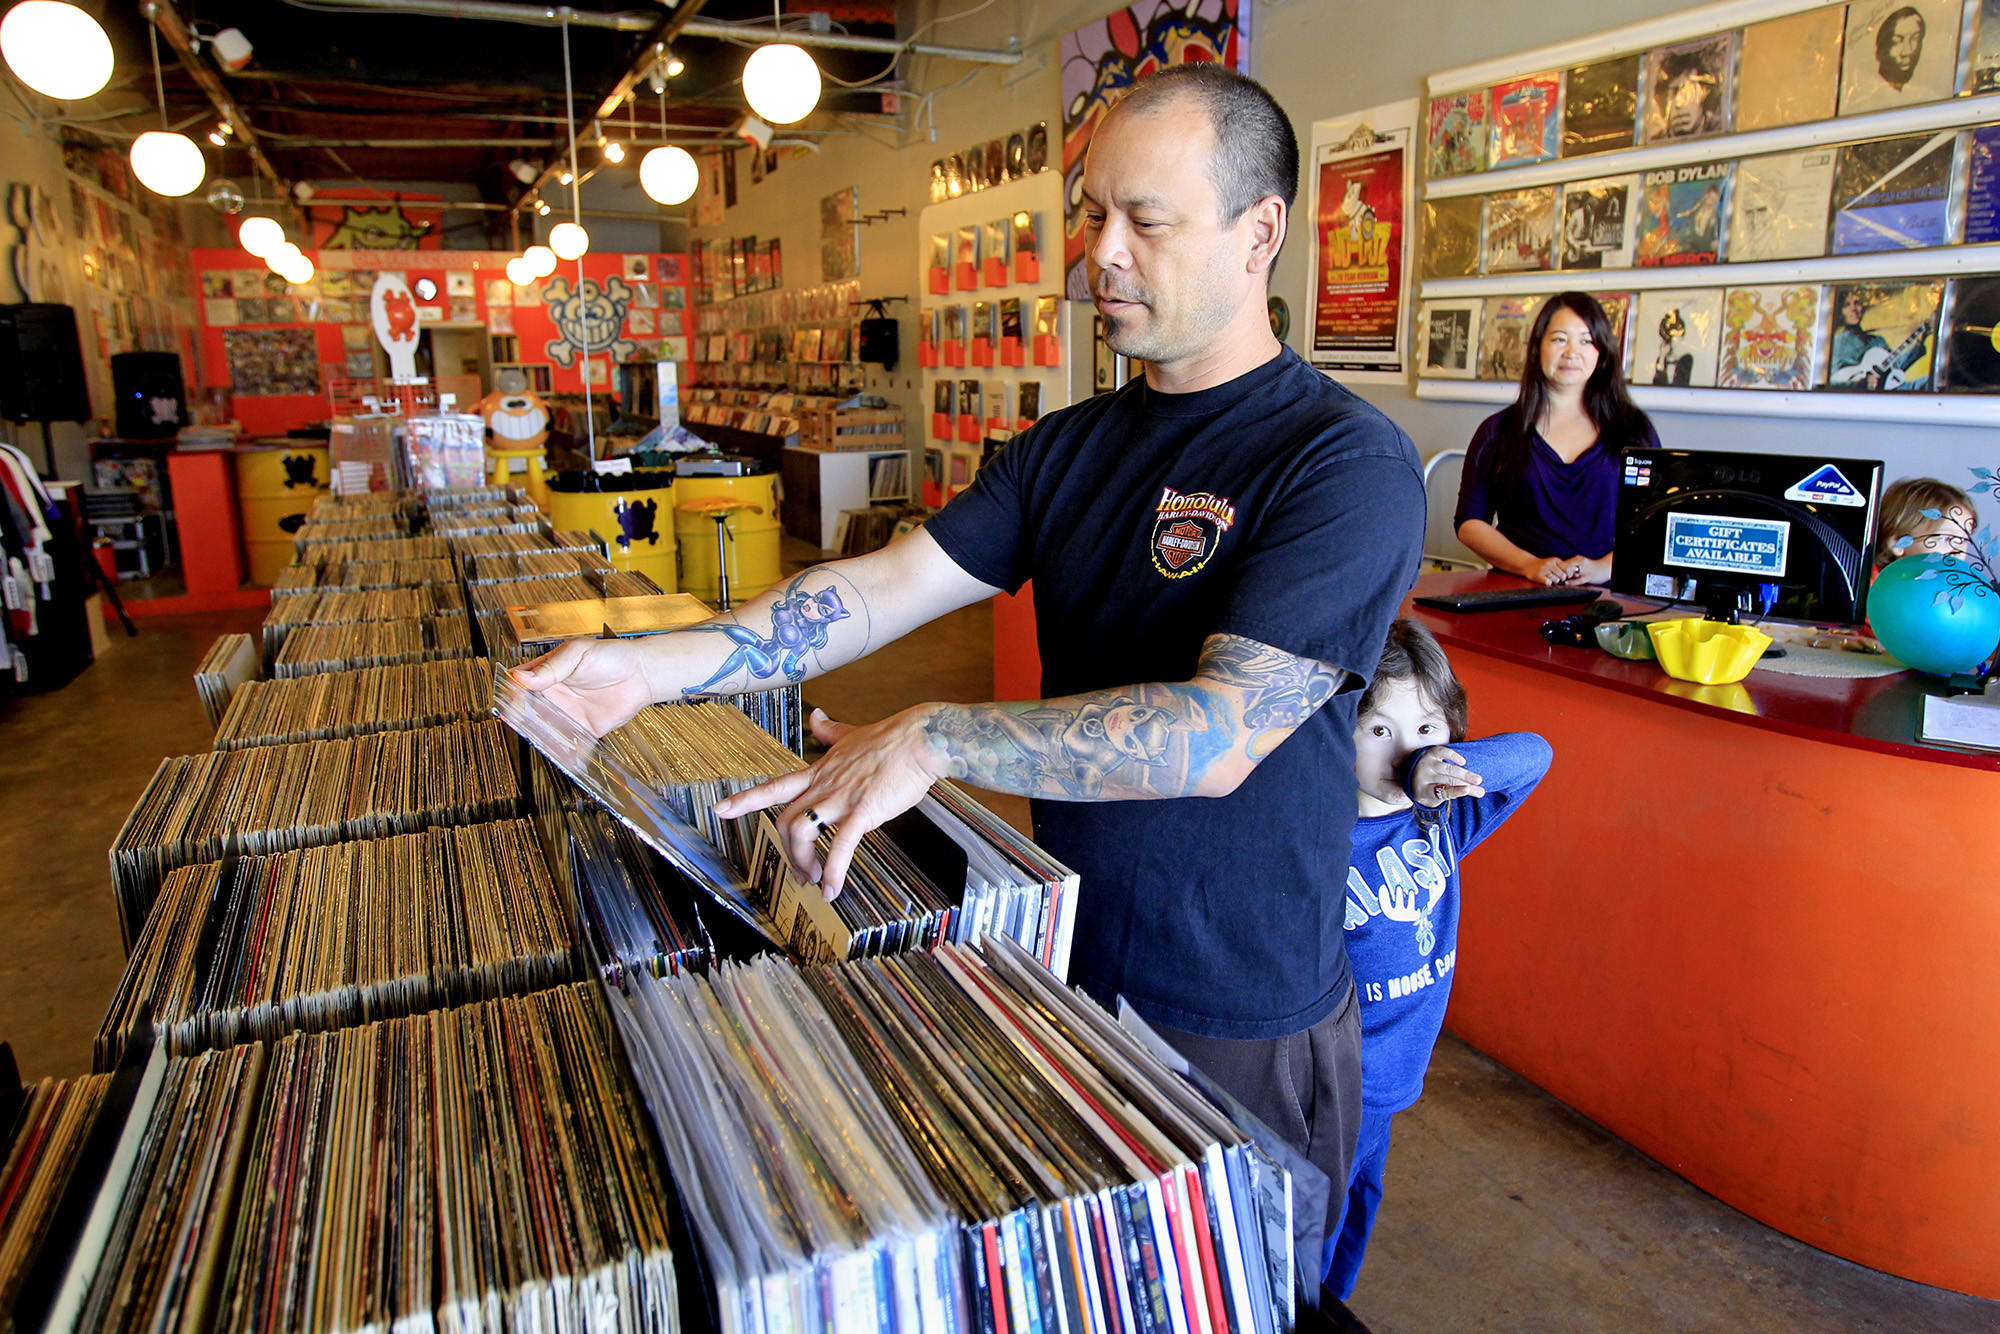 Steven DeZwart, 45, of Garden Grove looks through vinyl records accompanied by his son Andy, 5, bottom center, at Dr. Freecloud's Record Shoppe in Fountain Valley on Tuesday.